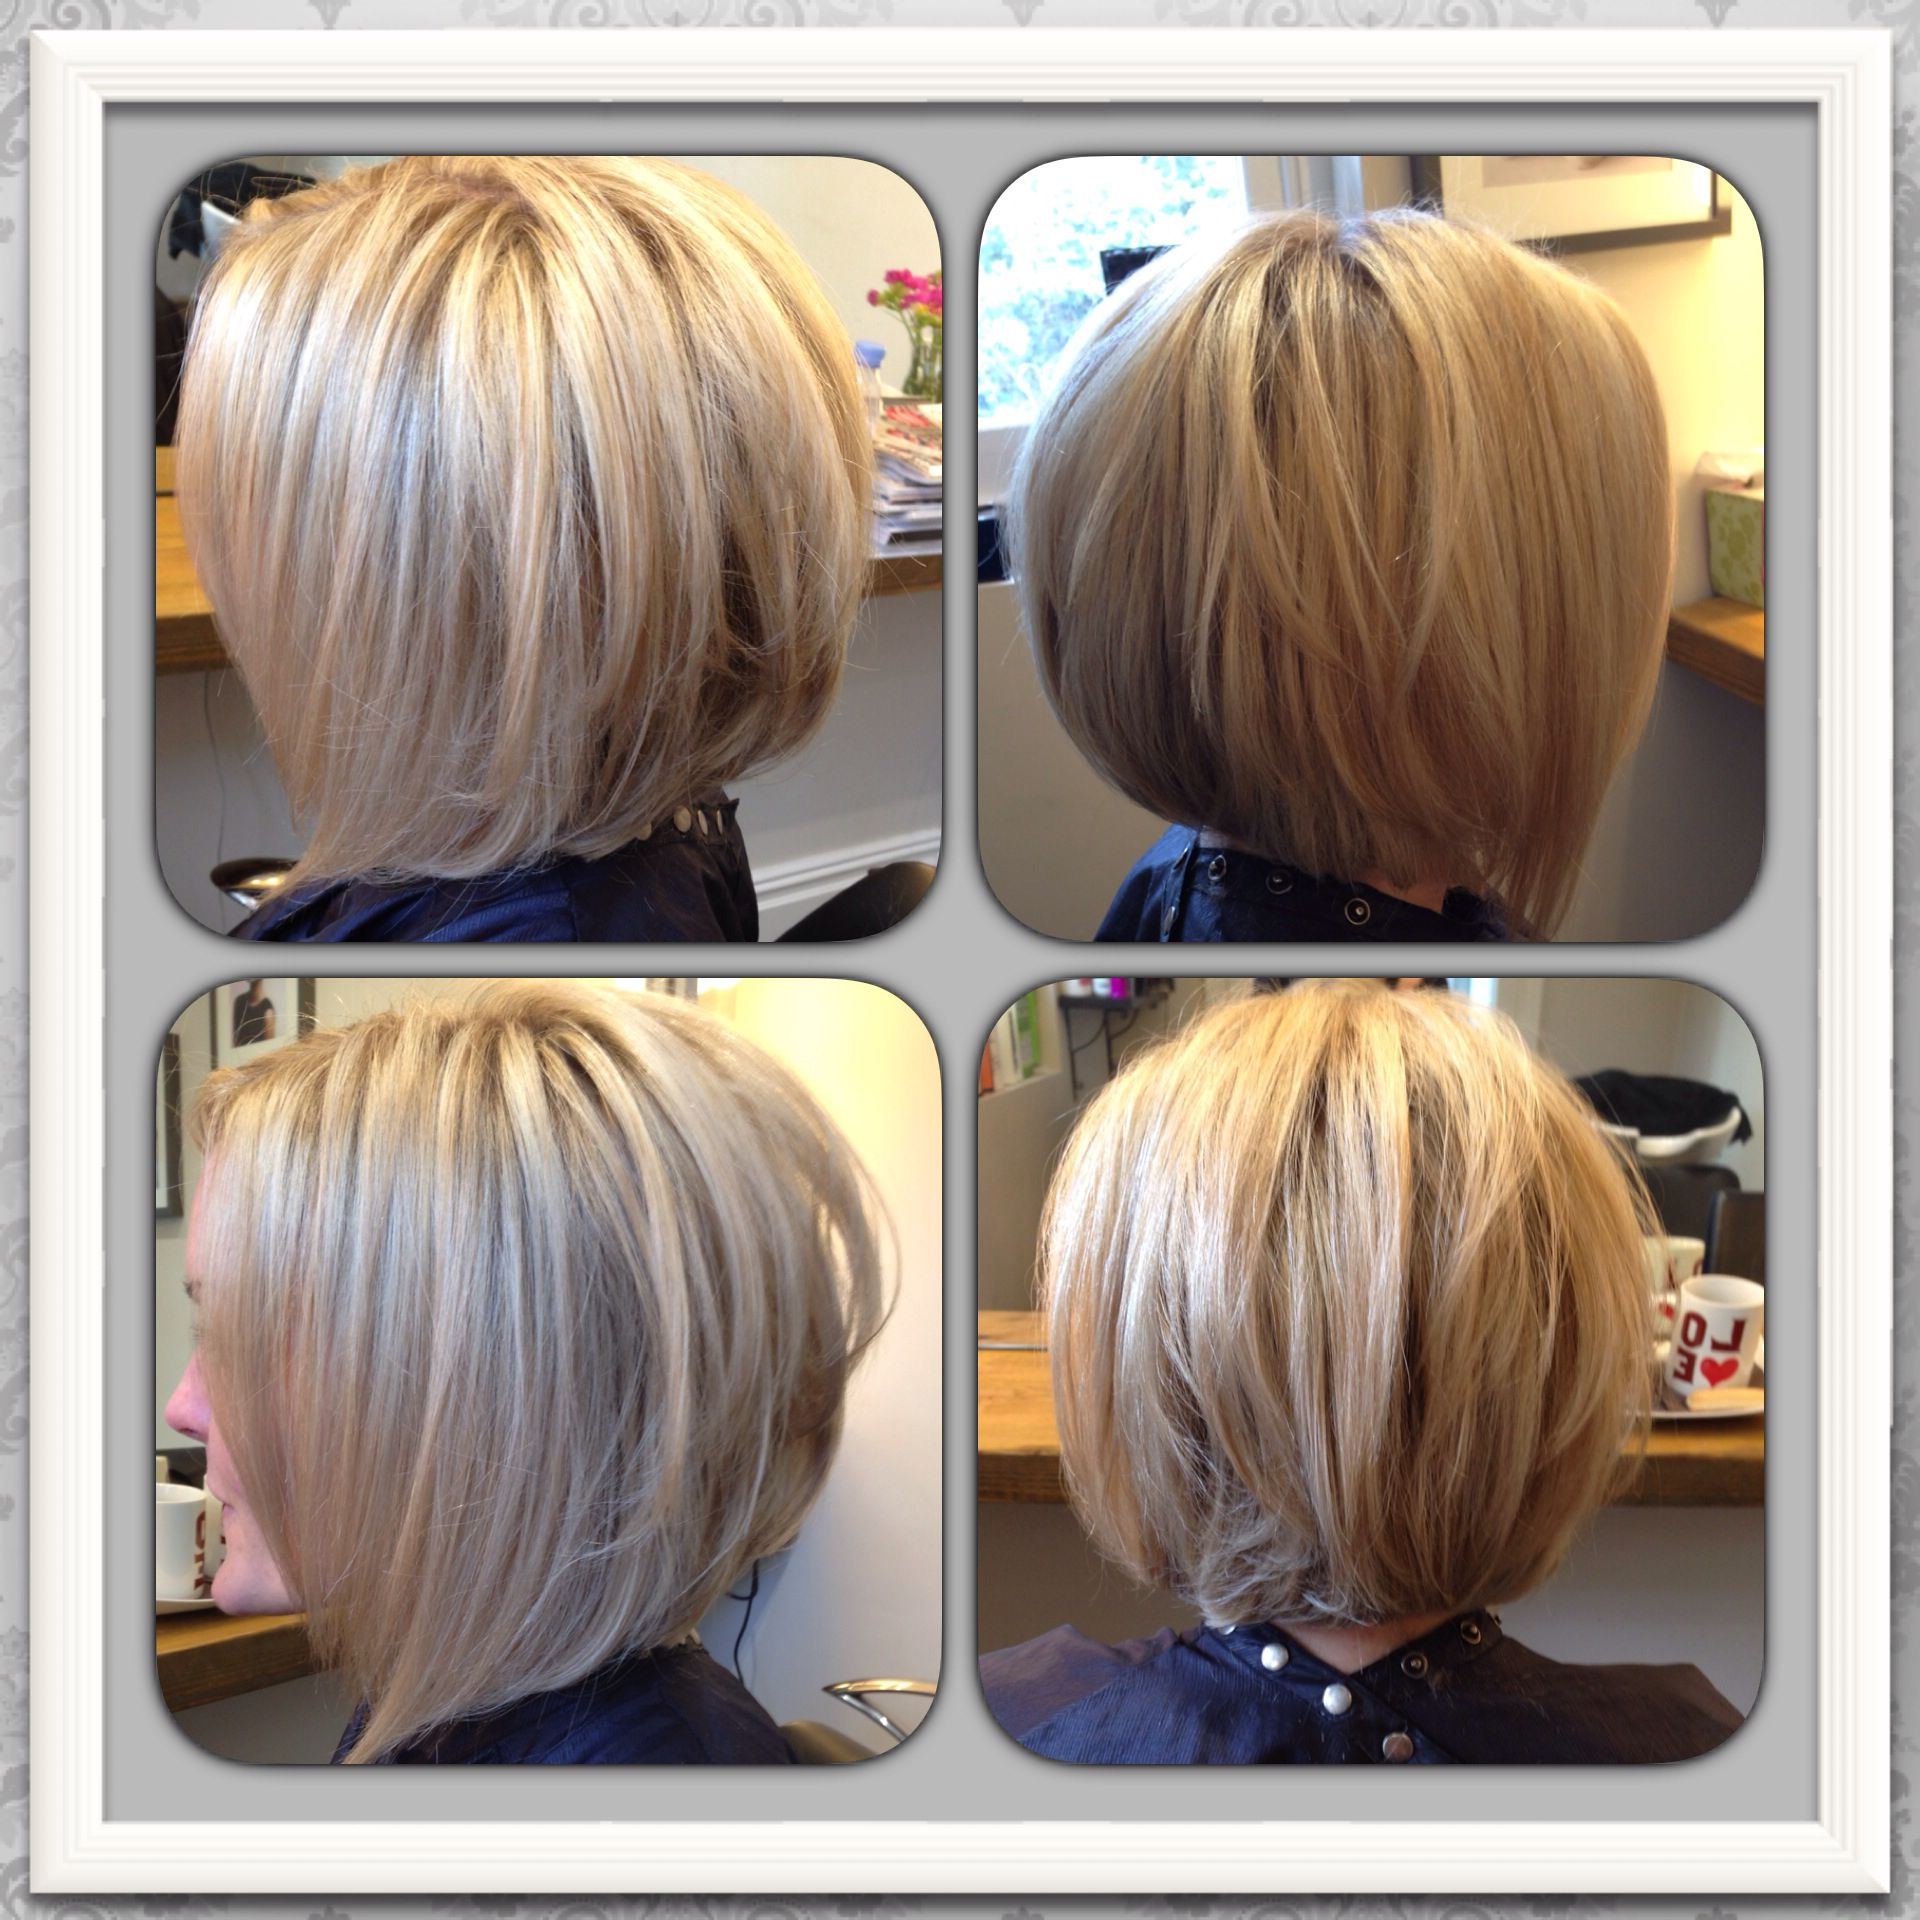 Love My New Hair! Blonde Highlighted Inverted / Graduated Bob Regarding Brown And Blonde Graduated Bob Hairstyles (Gallery 1 of 20)